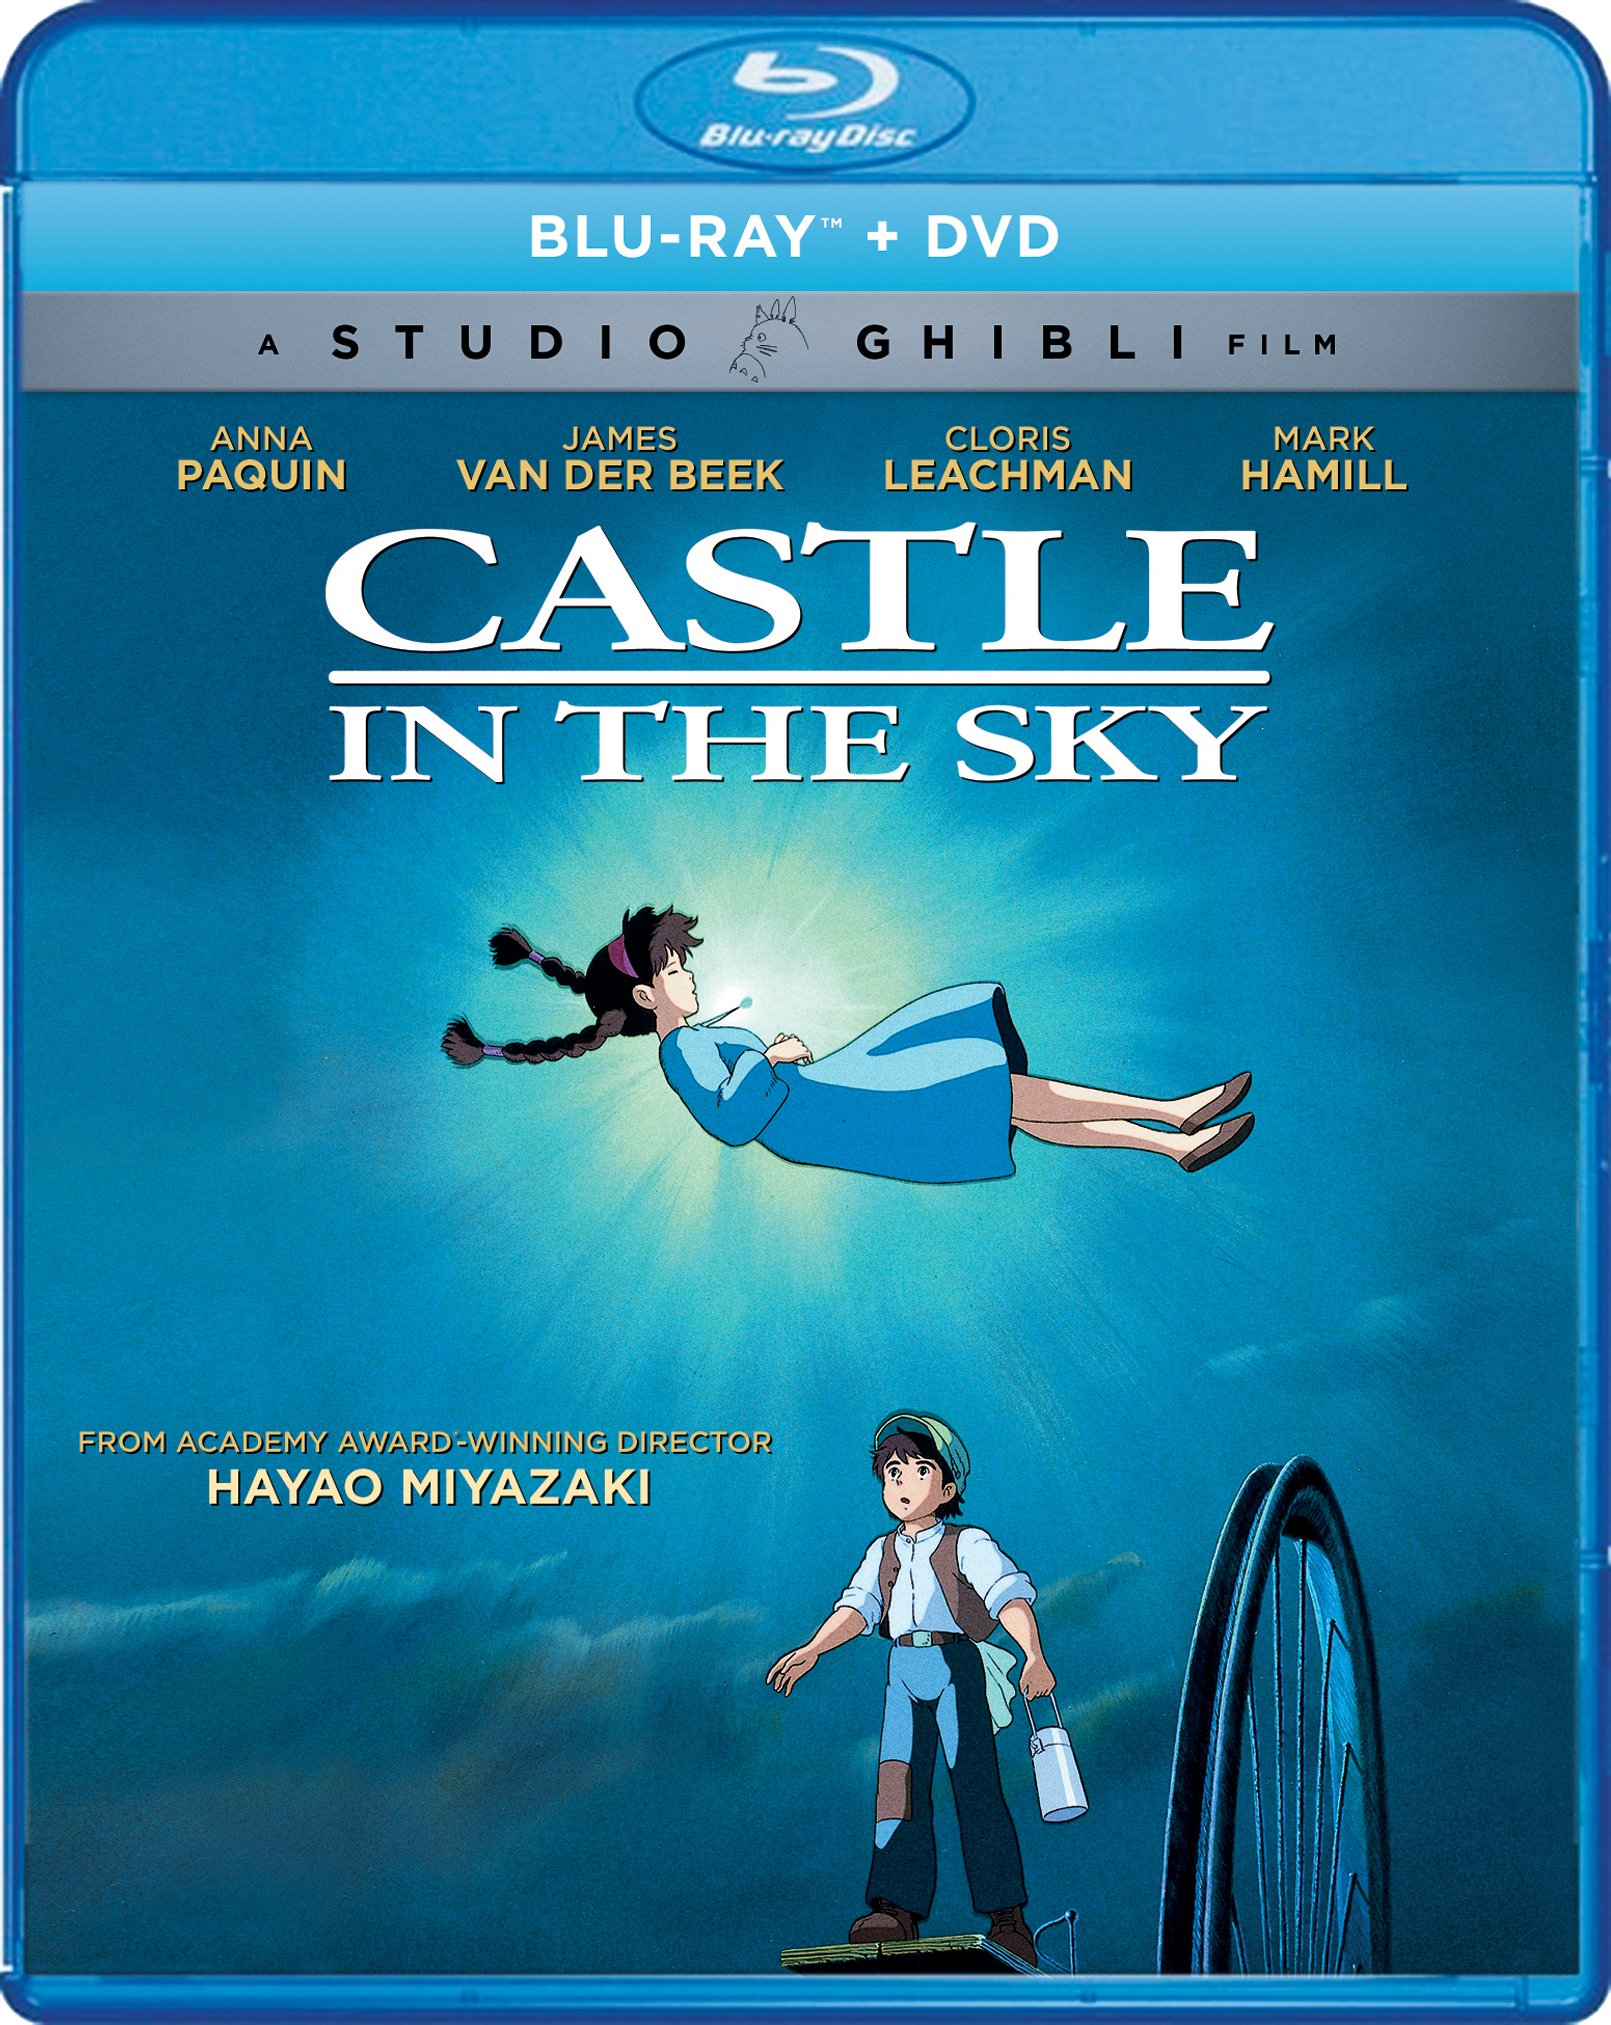 Blu-ray : Castle In The Sky (With DVD, Widescreen, 2 Pack, 2 Disc)